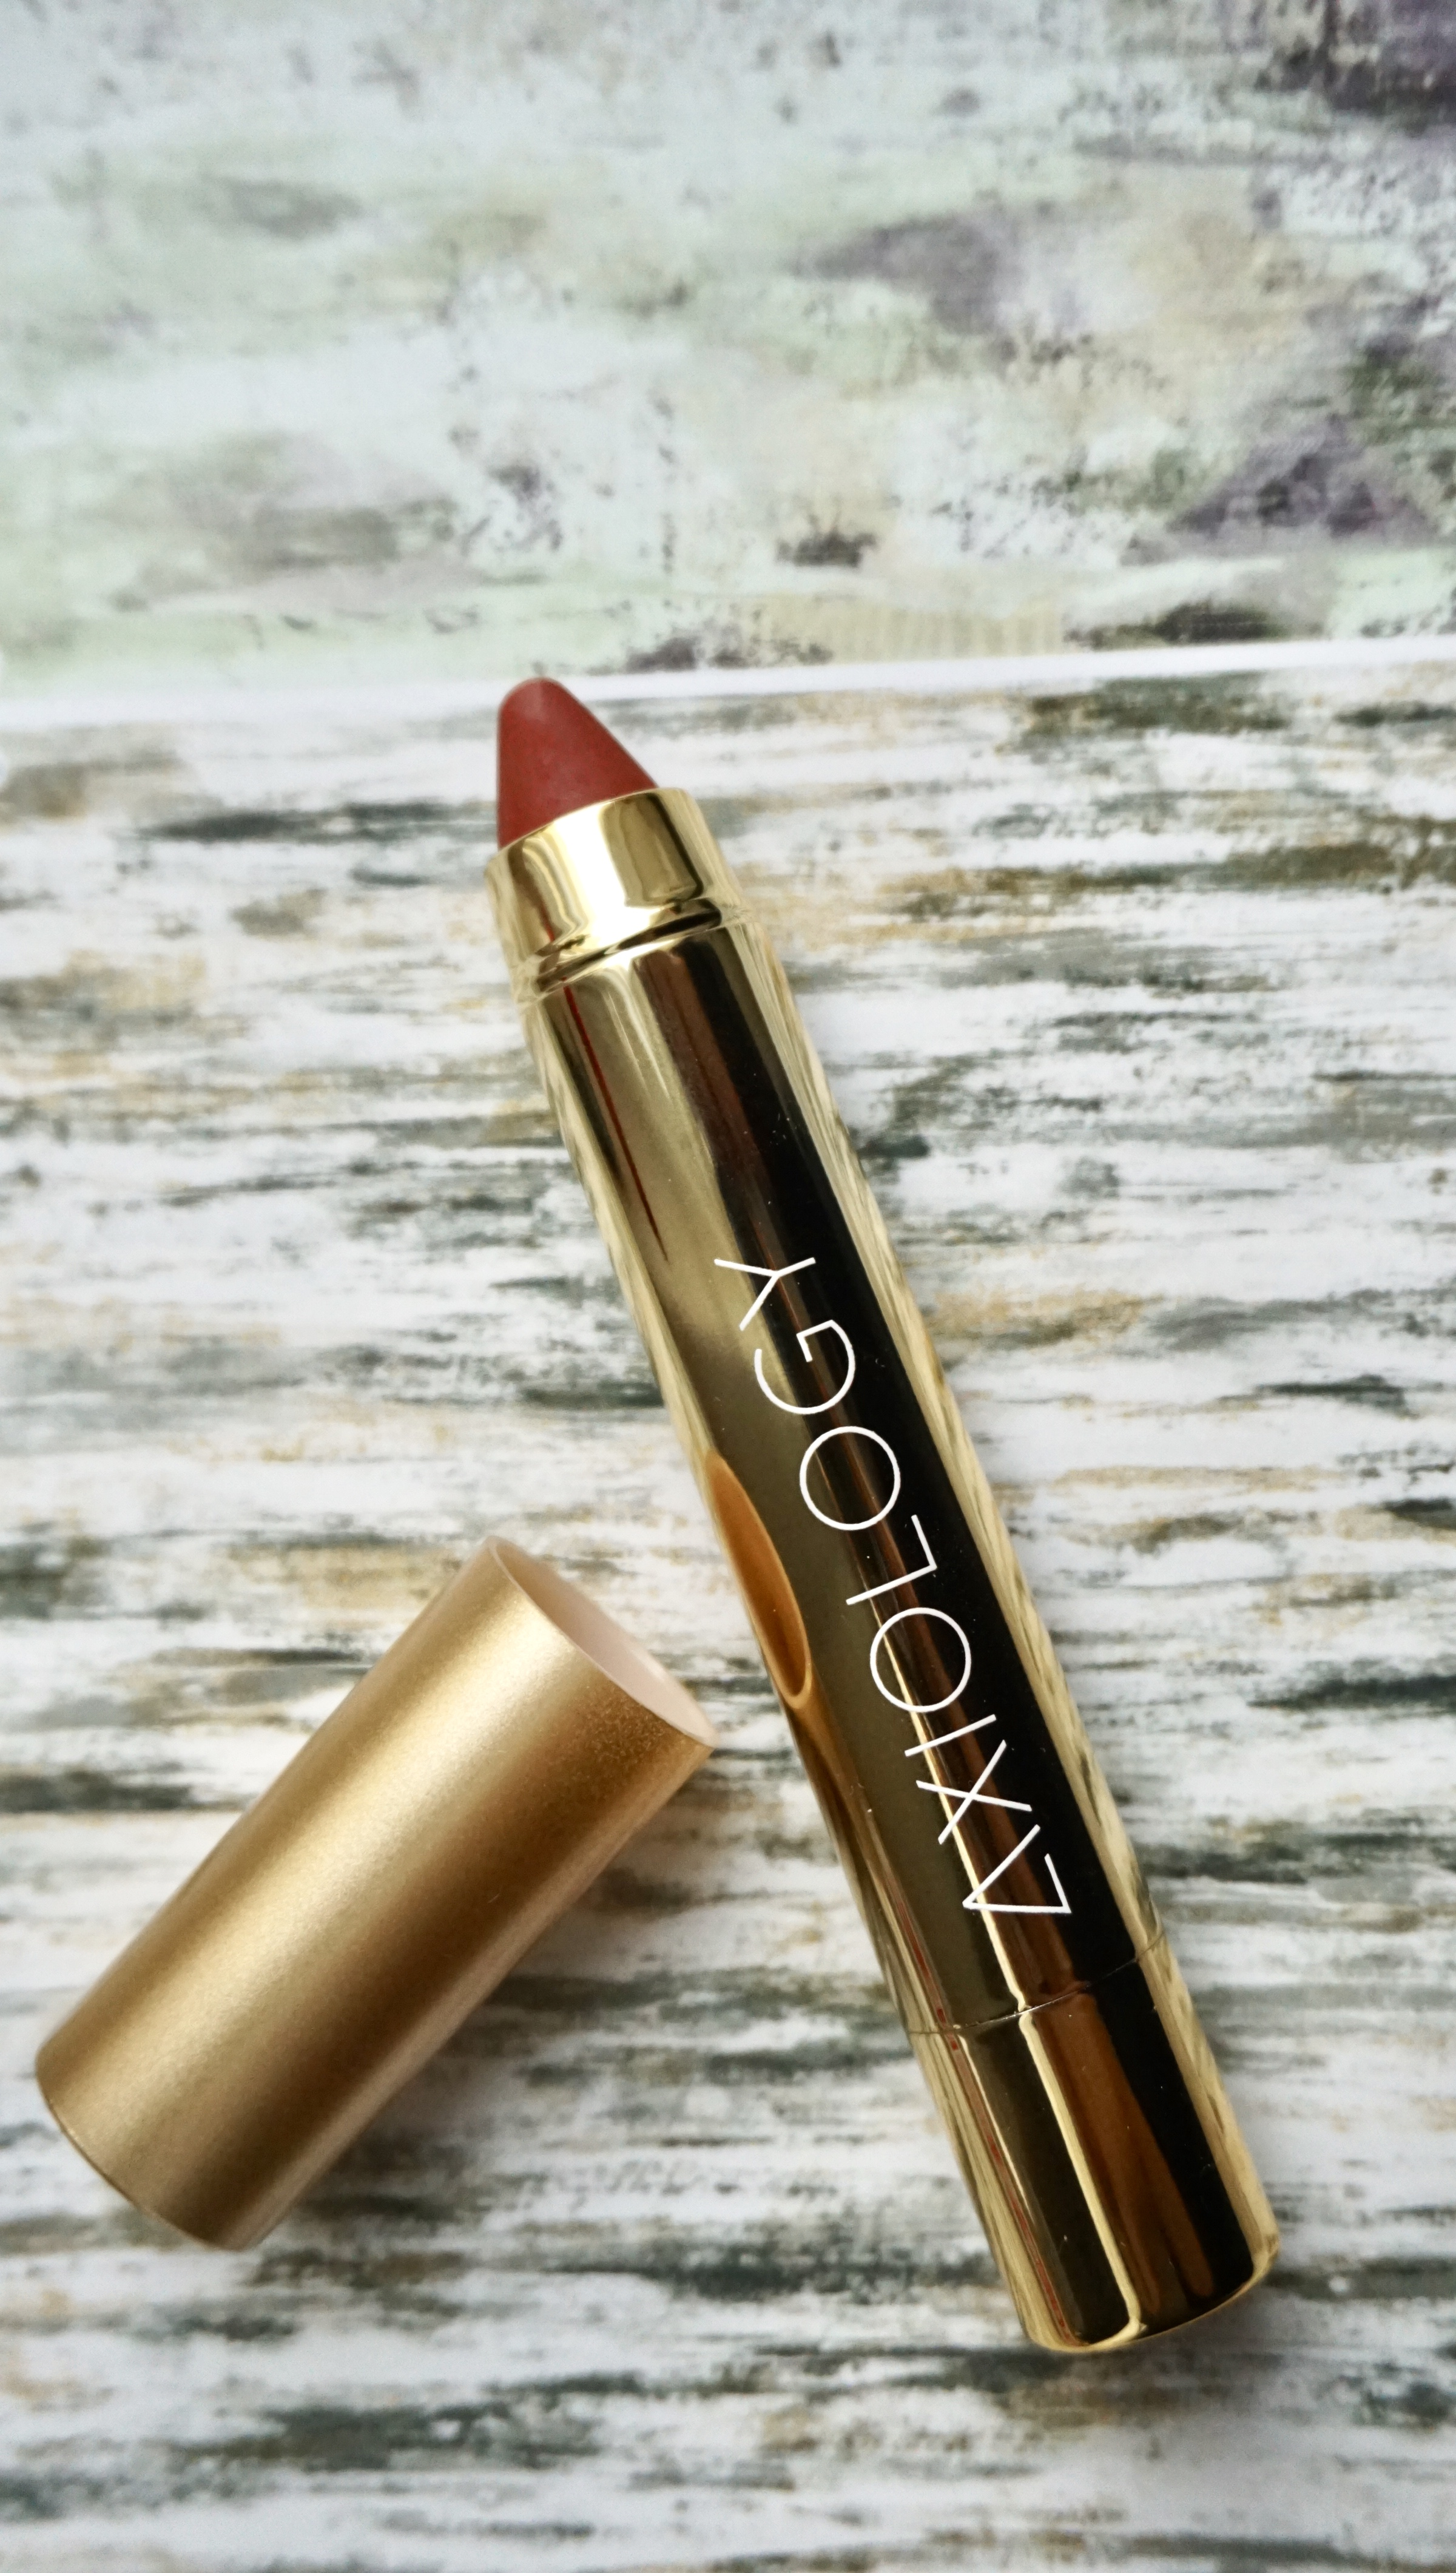 """3. AXIOLOGY Lip Crayon - I personally support the brand first for the value and ethics and then the products. In the words of the founder, Ericka Rodriguez- """"Makeup shouldn't just be safe for the people who wear it. It should also be safe for animals, the planet and the people who make it."""" Rightly said, beauty cannot be created by hurting the planet.Axiology lip crayons are 100% vegan and only use ten ingredients, which are listed on their website. Expect a a semi-matt finish and a 60s color vibe.€26"""